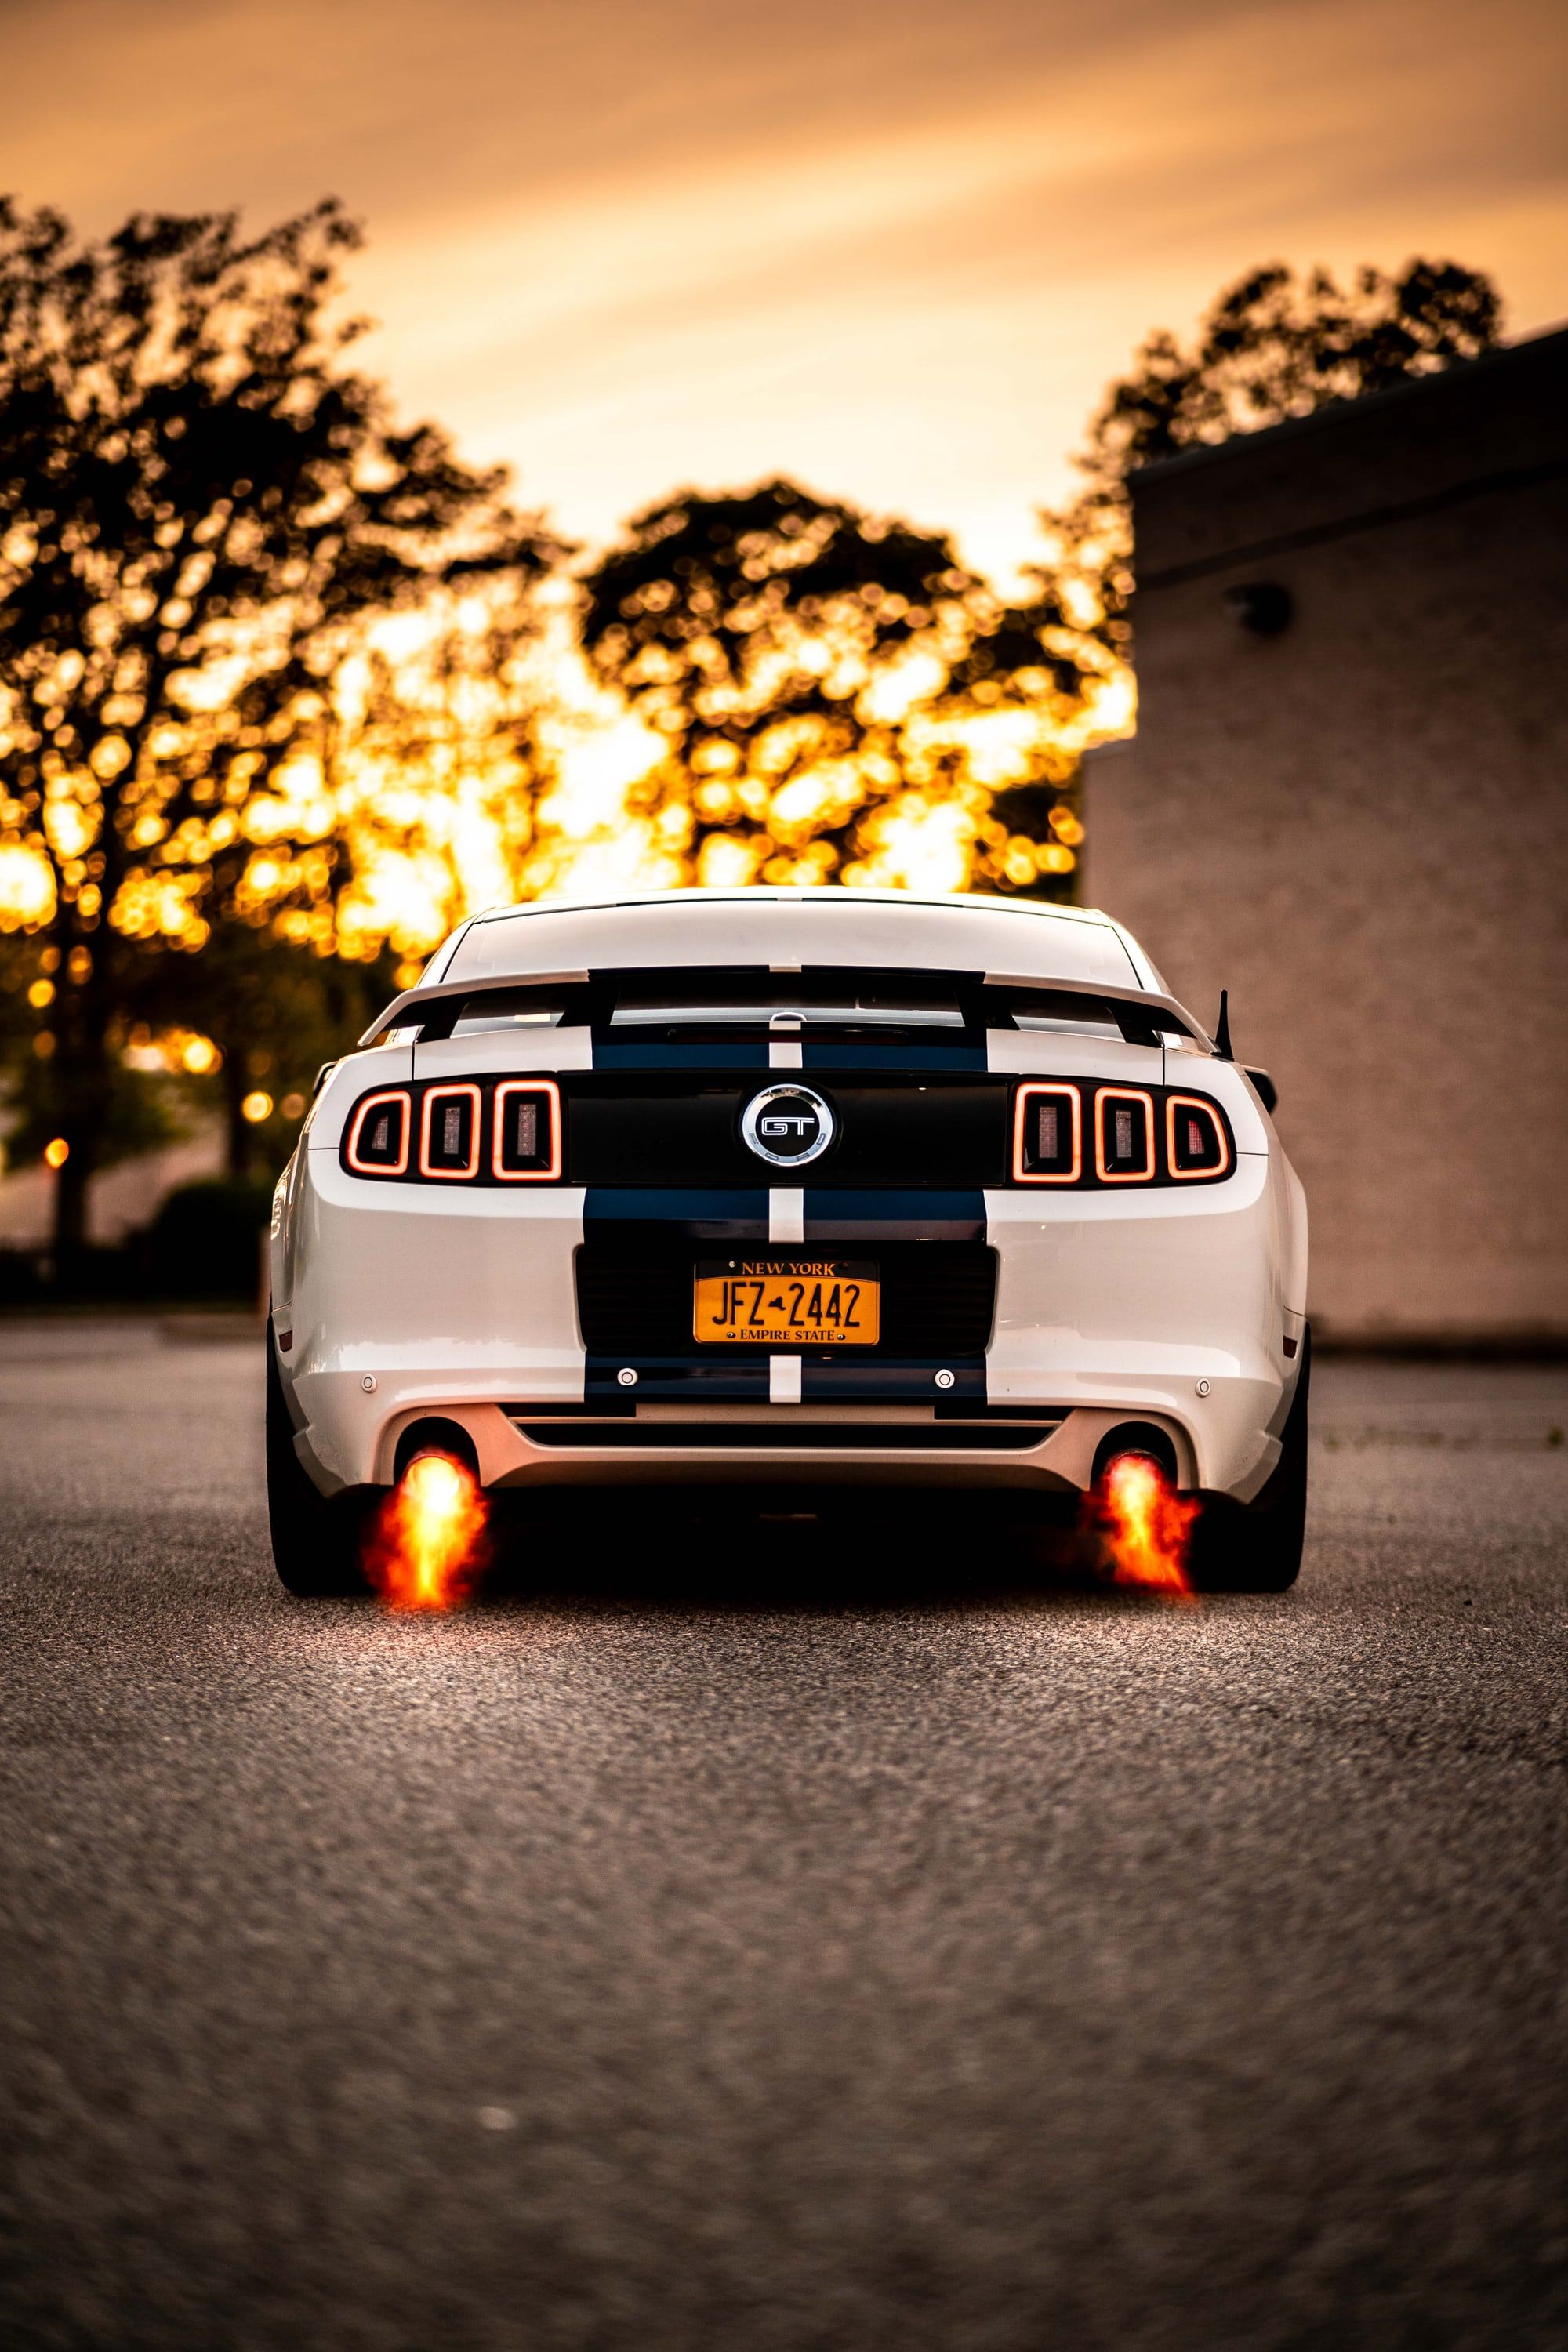 Thanks To Jon Megna For Making This Photo Available Freely On Unsplash Ford Mustang Wallpaper Mustang Wallpaper Ford Mustang Gt